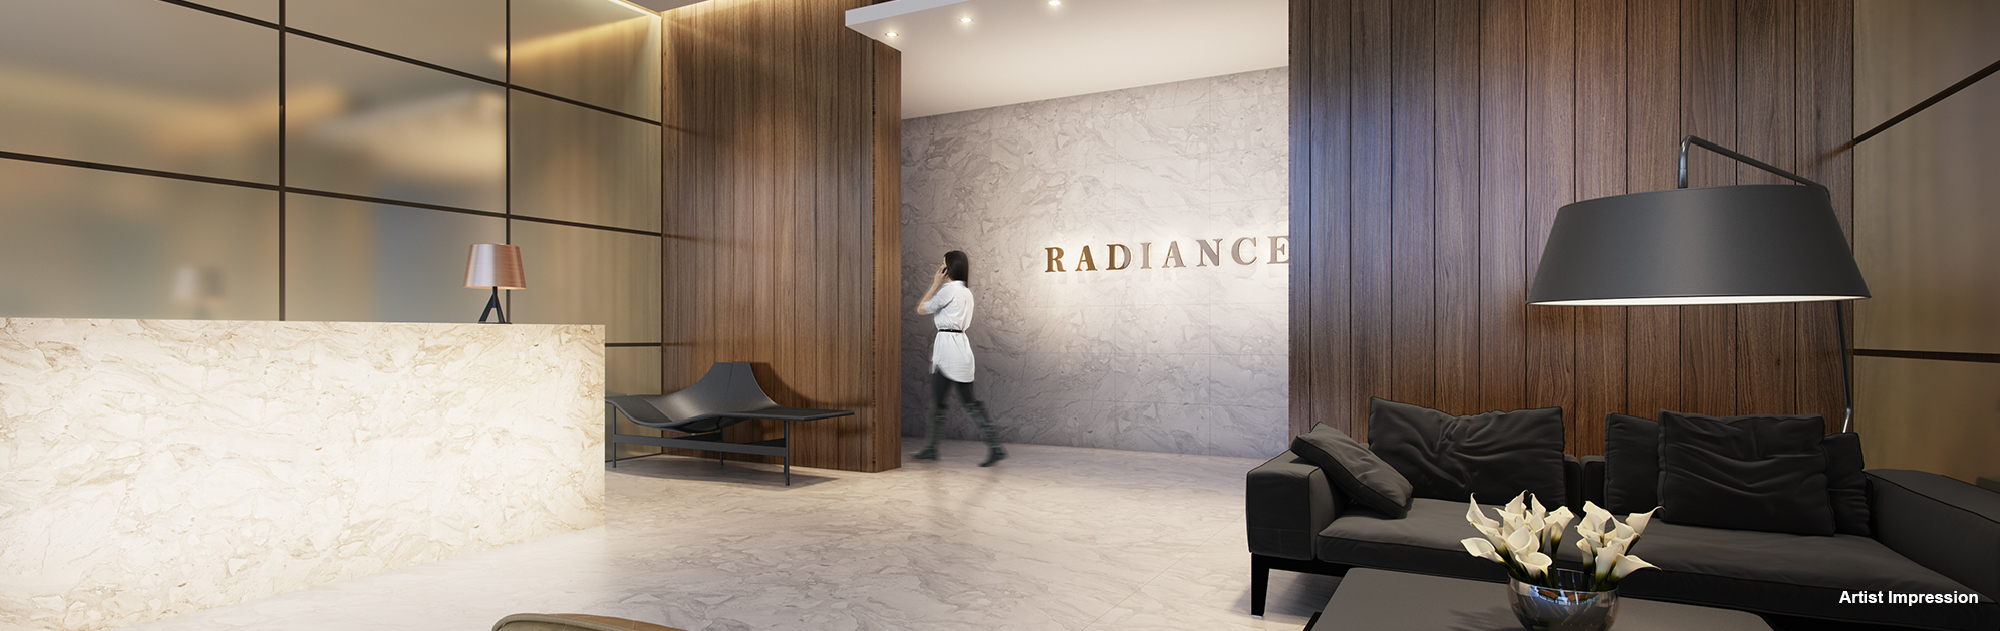 Radiance Darling Harbour Apartments For Sale  CBRE Residential Projects   New South Wales   Sydney NSW 2000